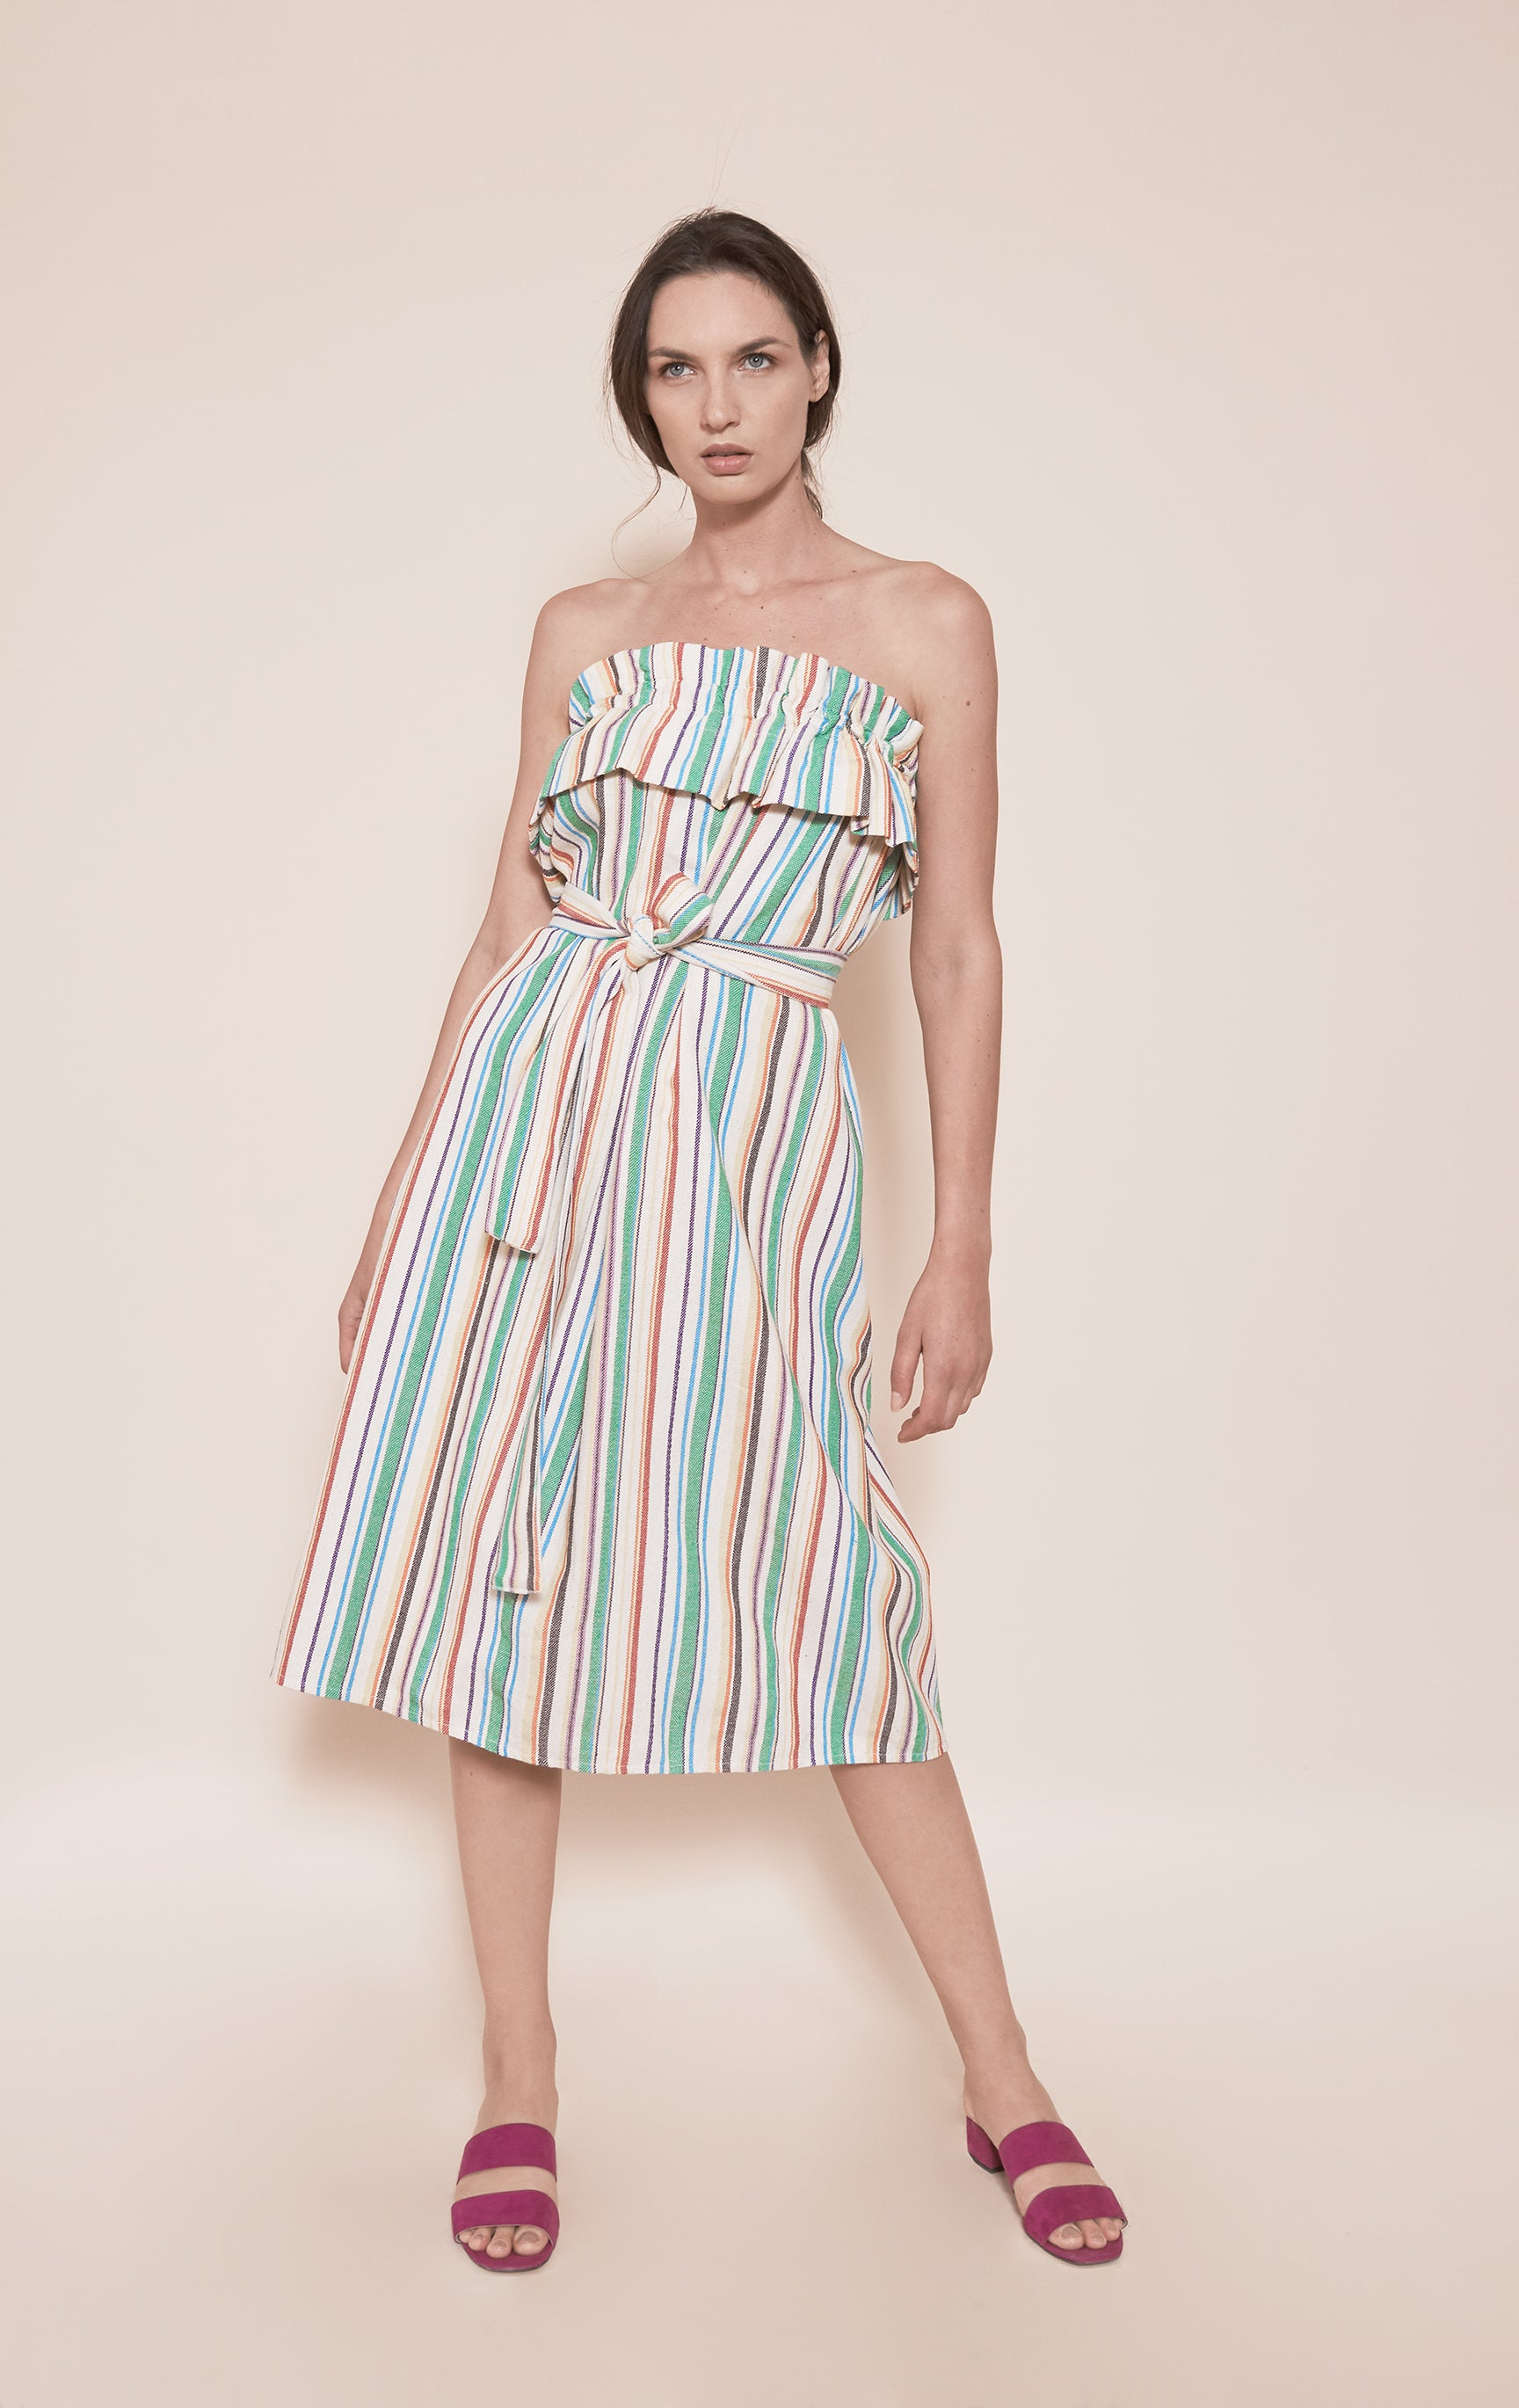 THE TODOS SANTOS DRESS